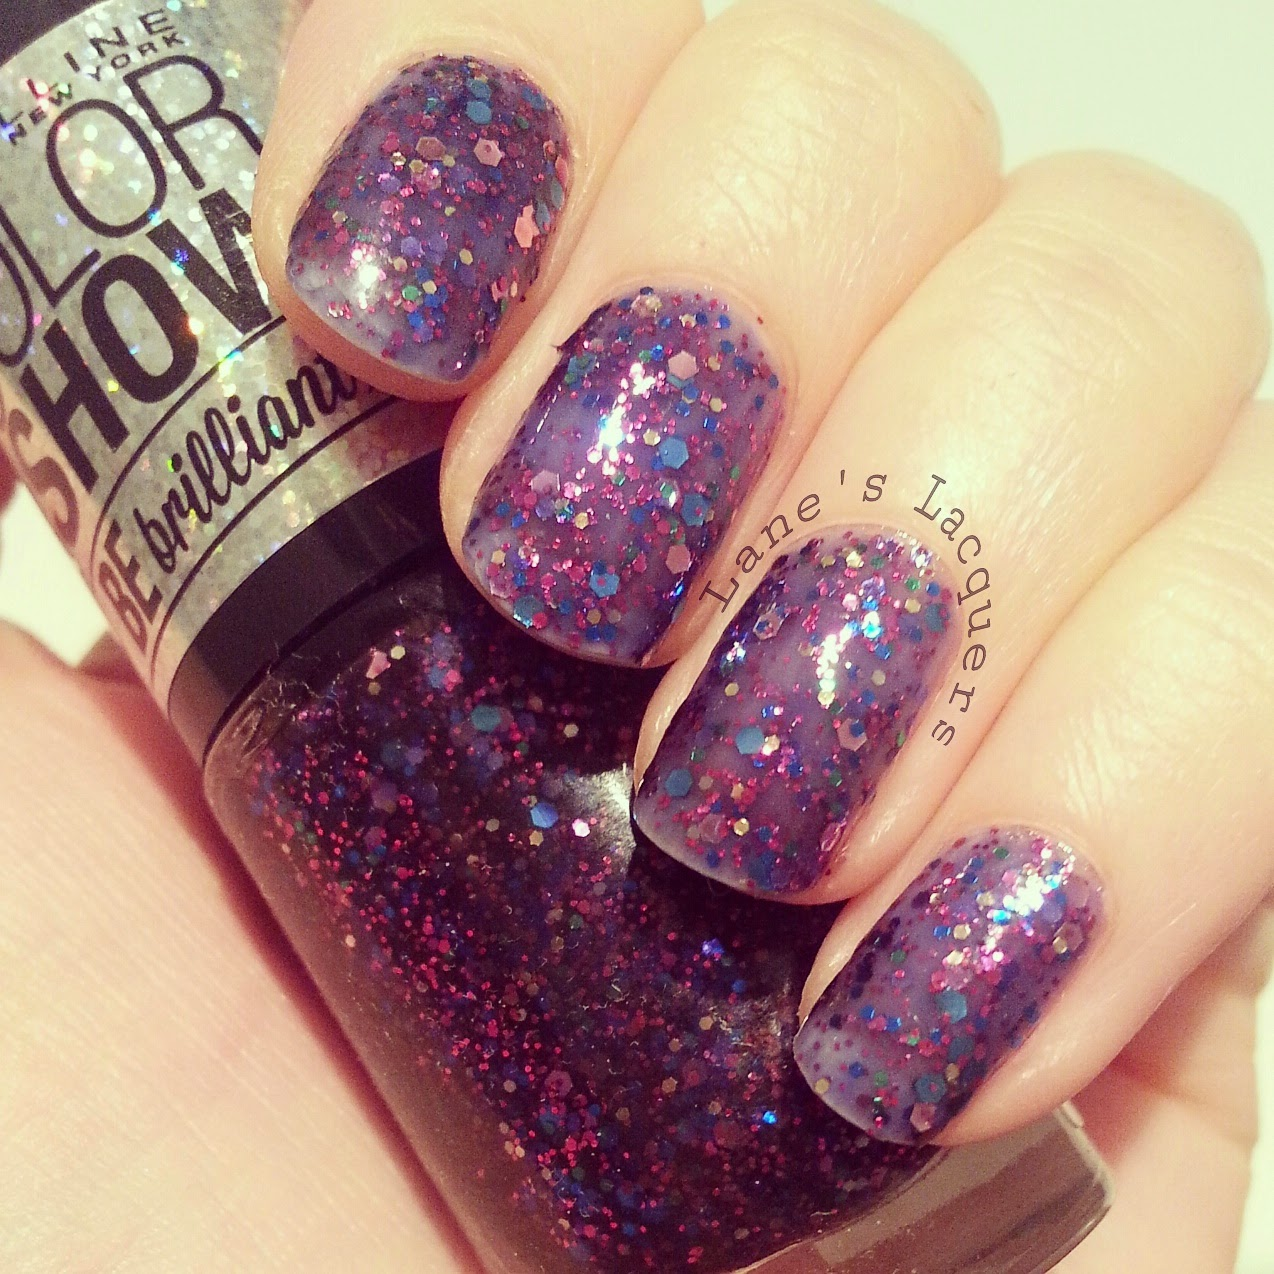 maybelline-colorshow-be-brilliant-purple-dazzle-swatch-nails (2)